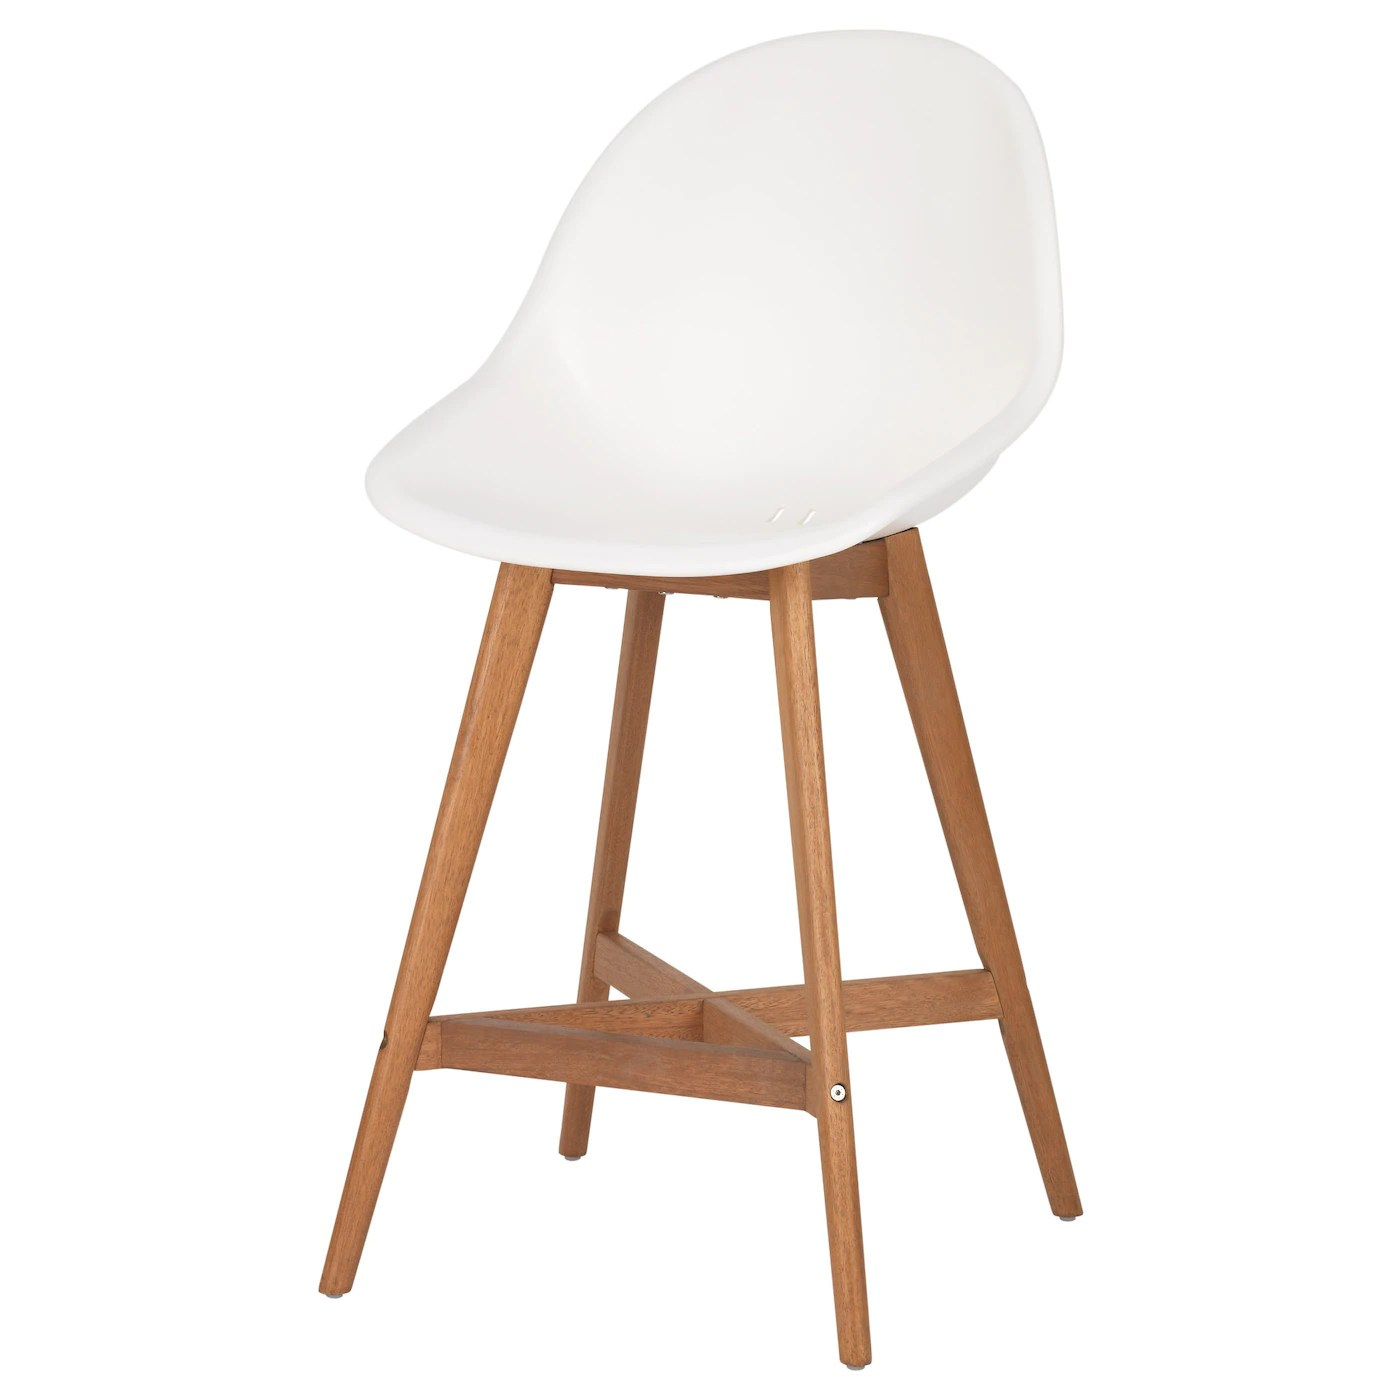 ikea bar chair butcher block table and set fanbyn stool with backrest white 64 cm